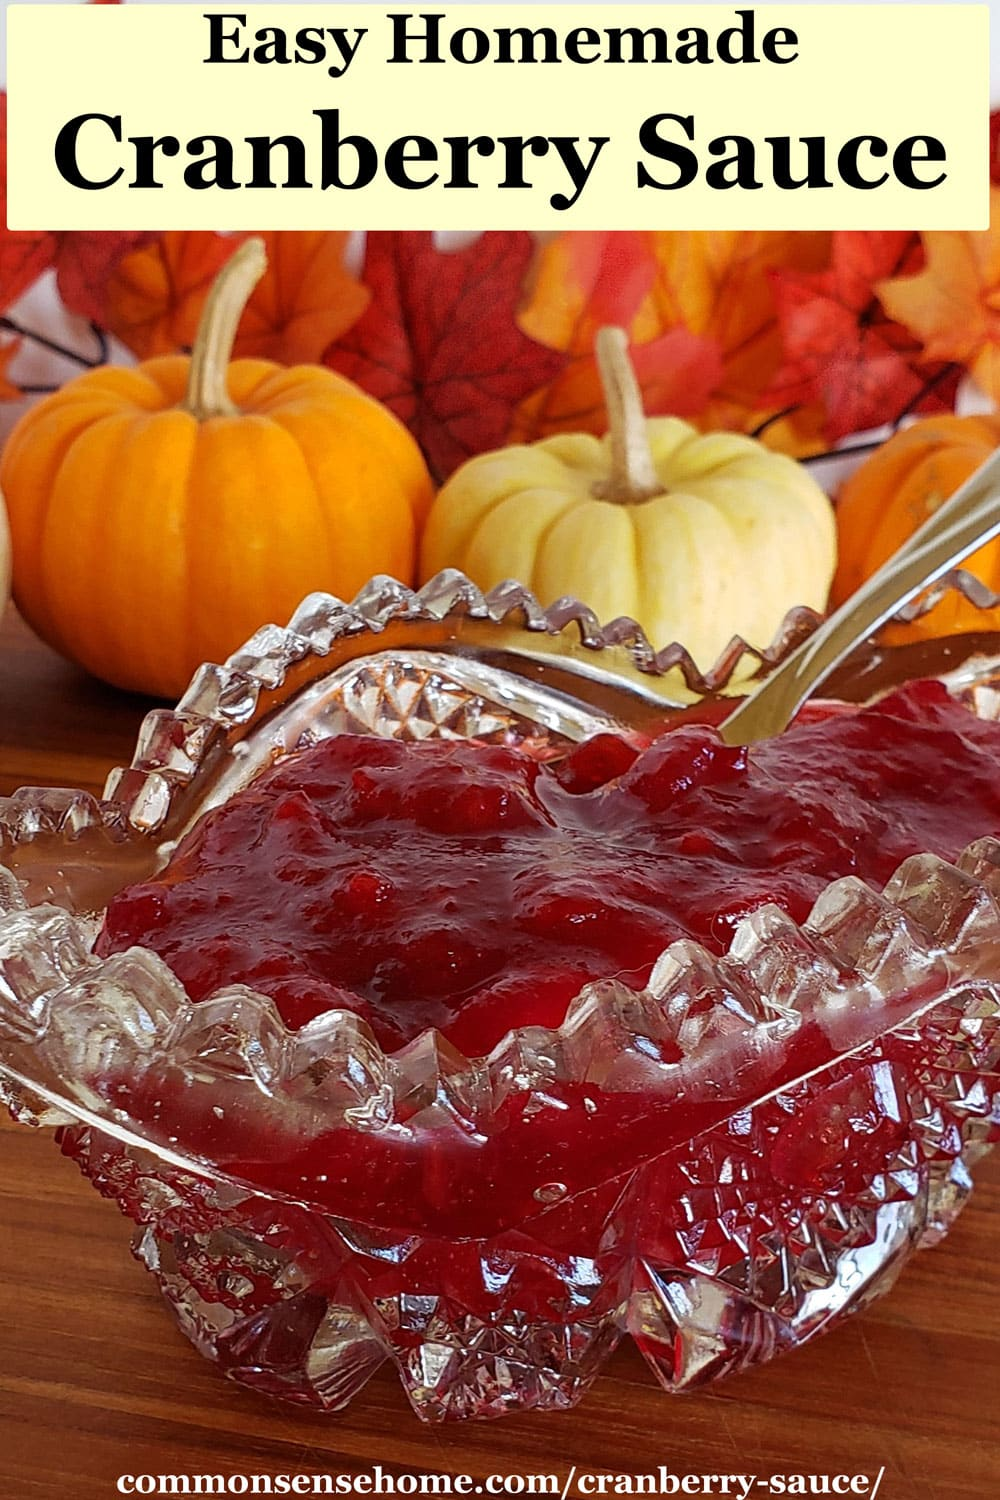 cranberry sauce for Thanksgiving